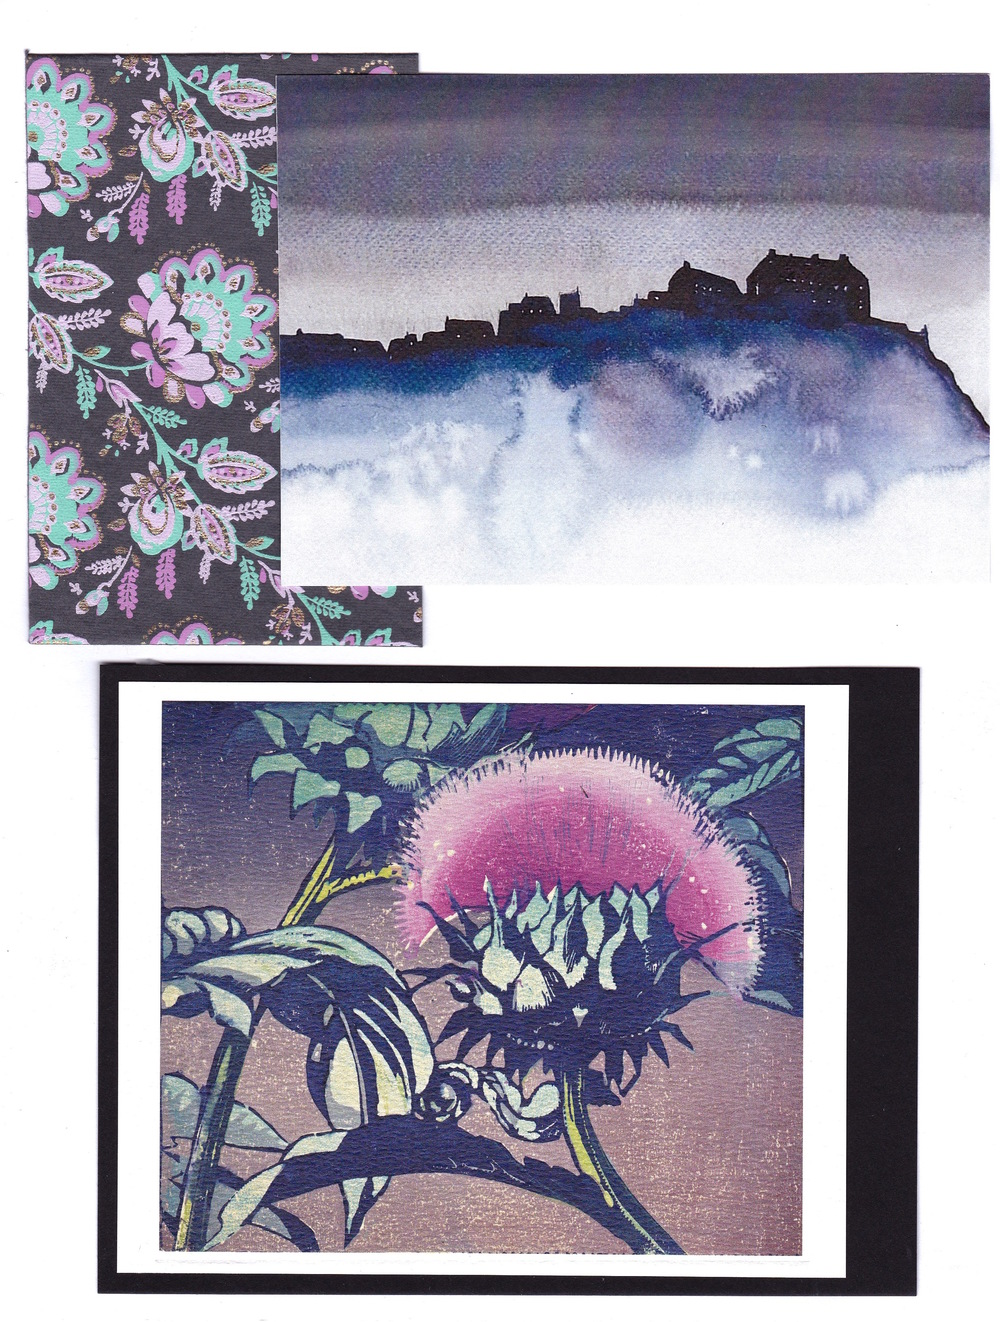 Edinburgh-based inspiration. Top:  Edinburgh Castle, Darkness , watercolor by Ross Macintyre (www.rossmacintyre.co.uk). Bottom:  Artichoke  (1935), woodcut by Mabel Royds  © The Estate of Mabel Royds (www.nationalgalleries.org)